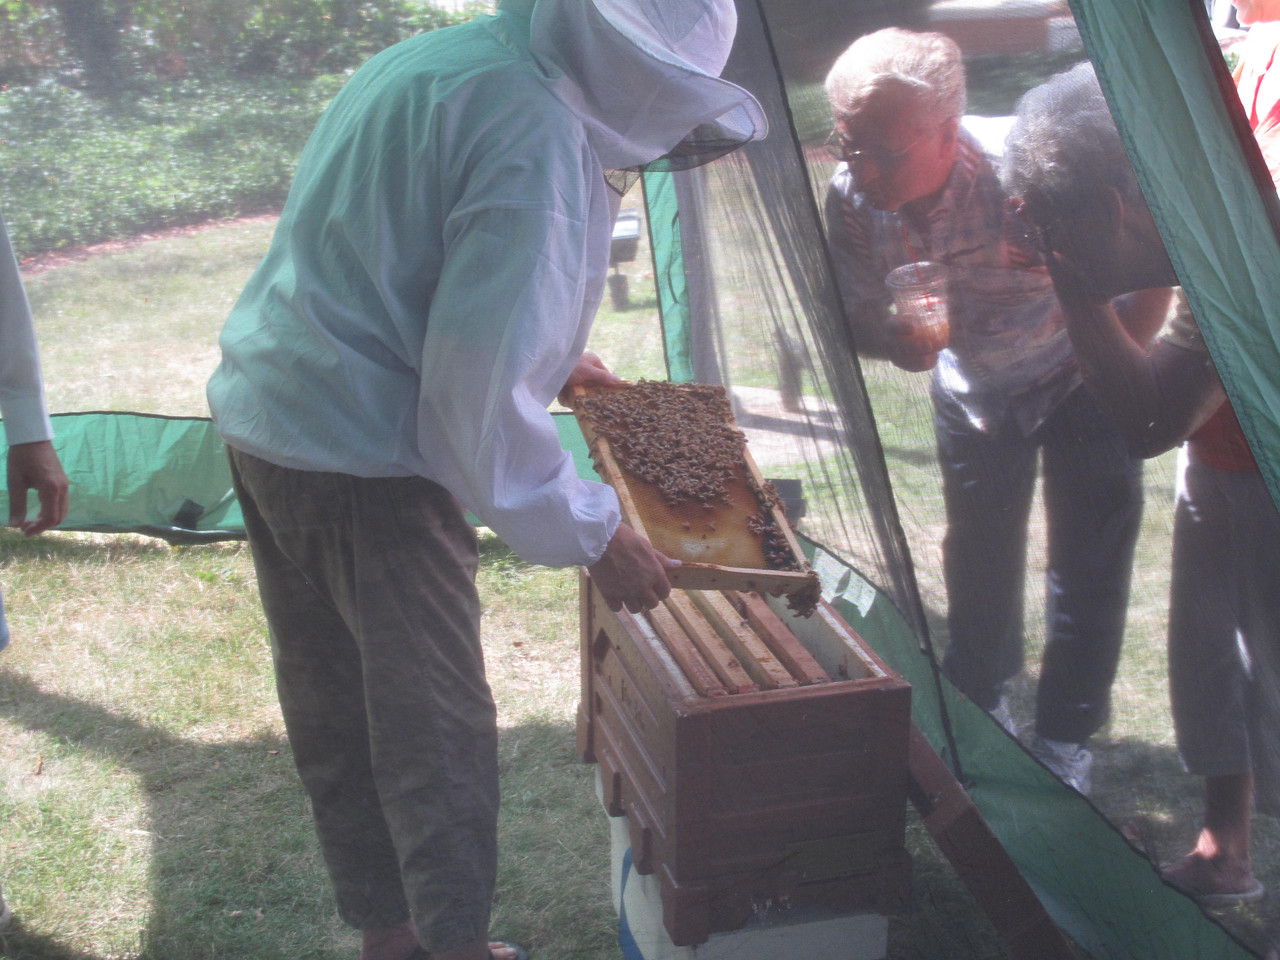 BOB FINNAN / GAZETTE Beekeeper Laurene Keil of Homeworth, Ohio, near Alliance, shows onlookers the queen bee in the hive from behind a tent Saturday in front of the Medina Library, 210 S. Broadway St.